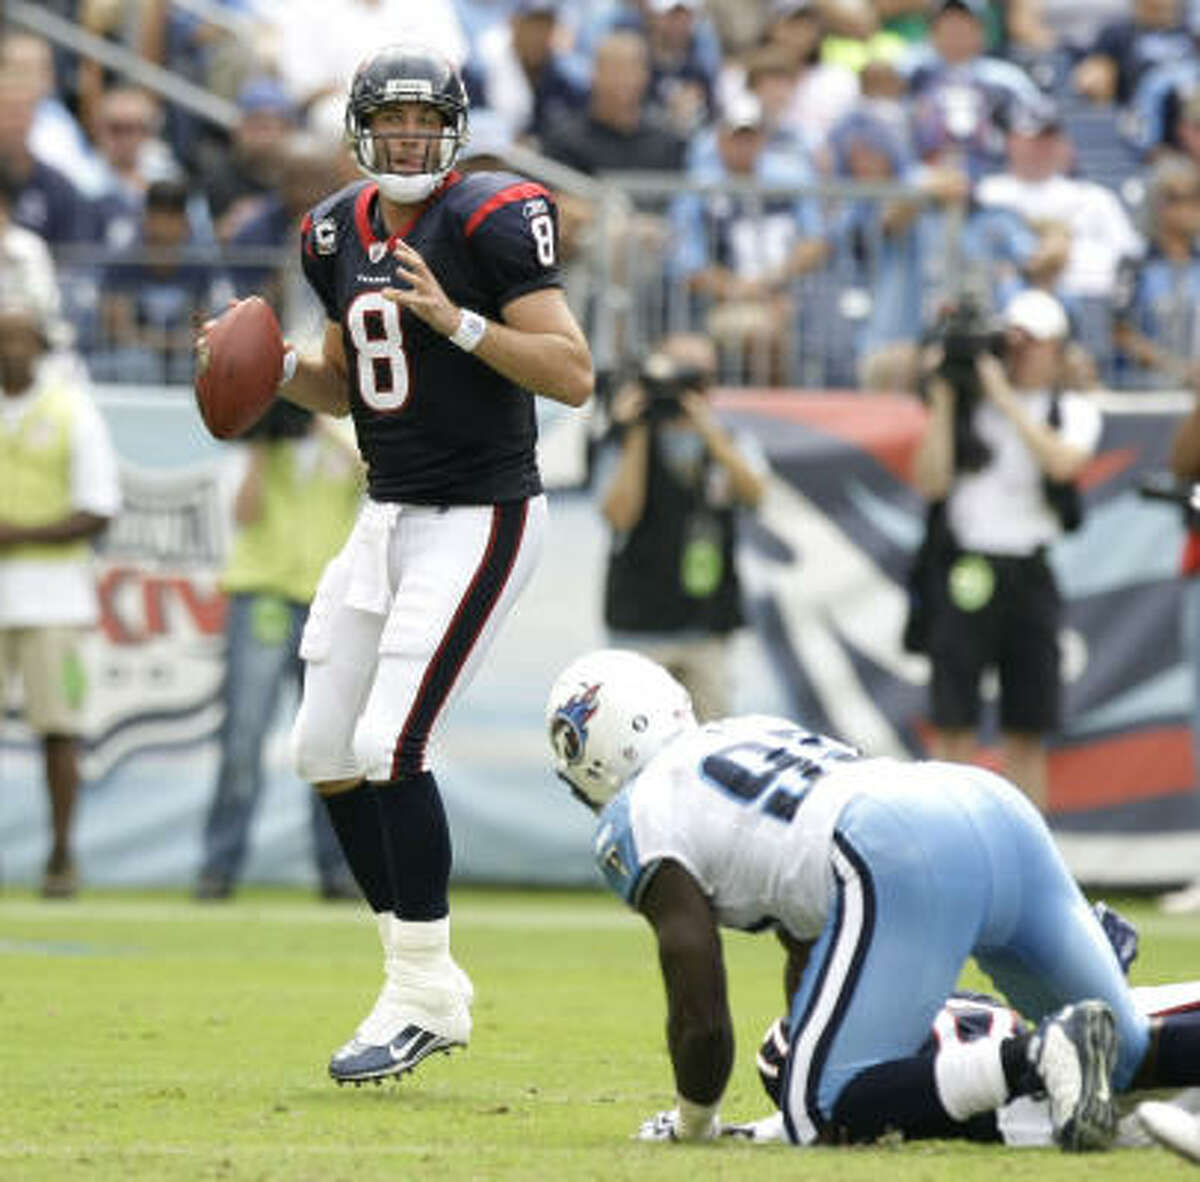 Matt Schaub's maturation as an NFL quarterback is far from complete, but it would be unfair to overlook the numbers he's compiled through six games and his projections for the rest of the season, according to John McClain.